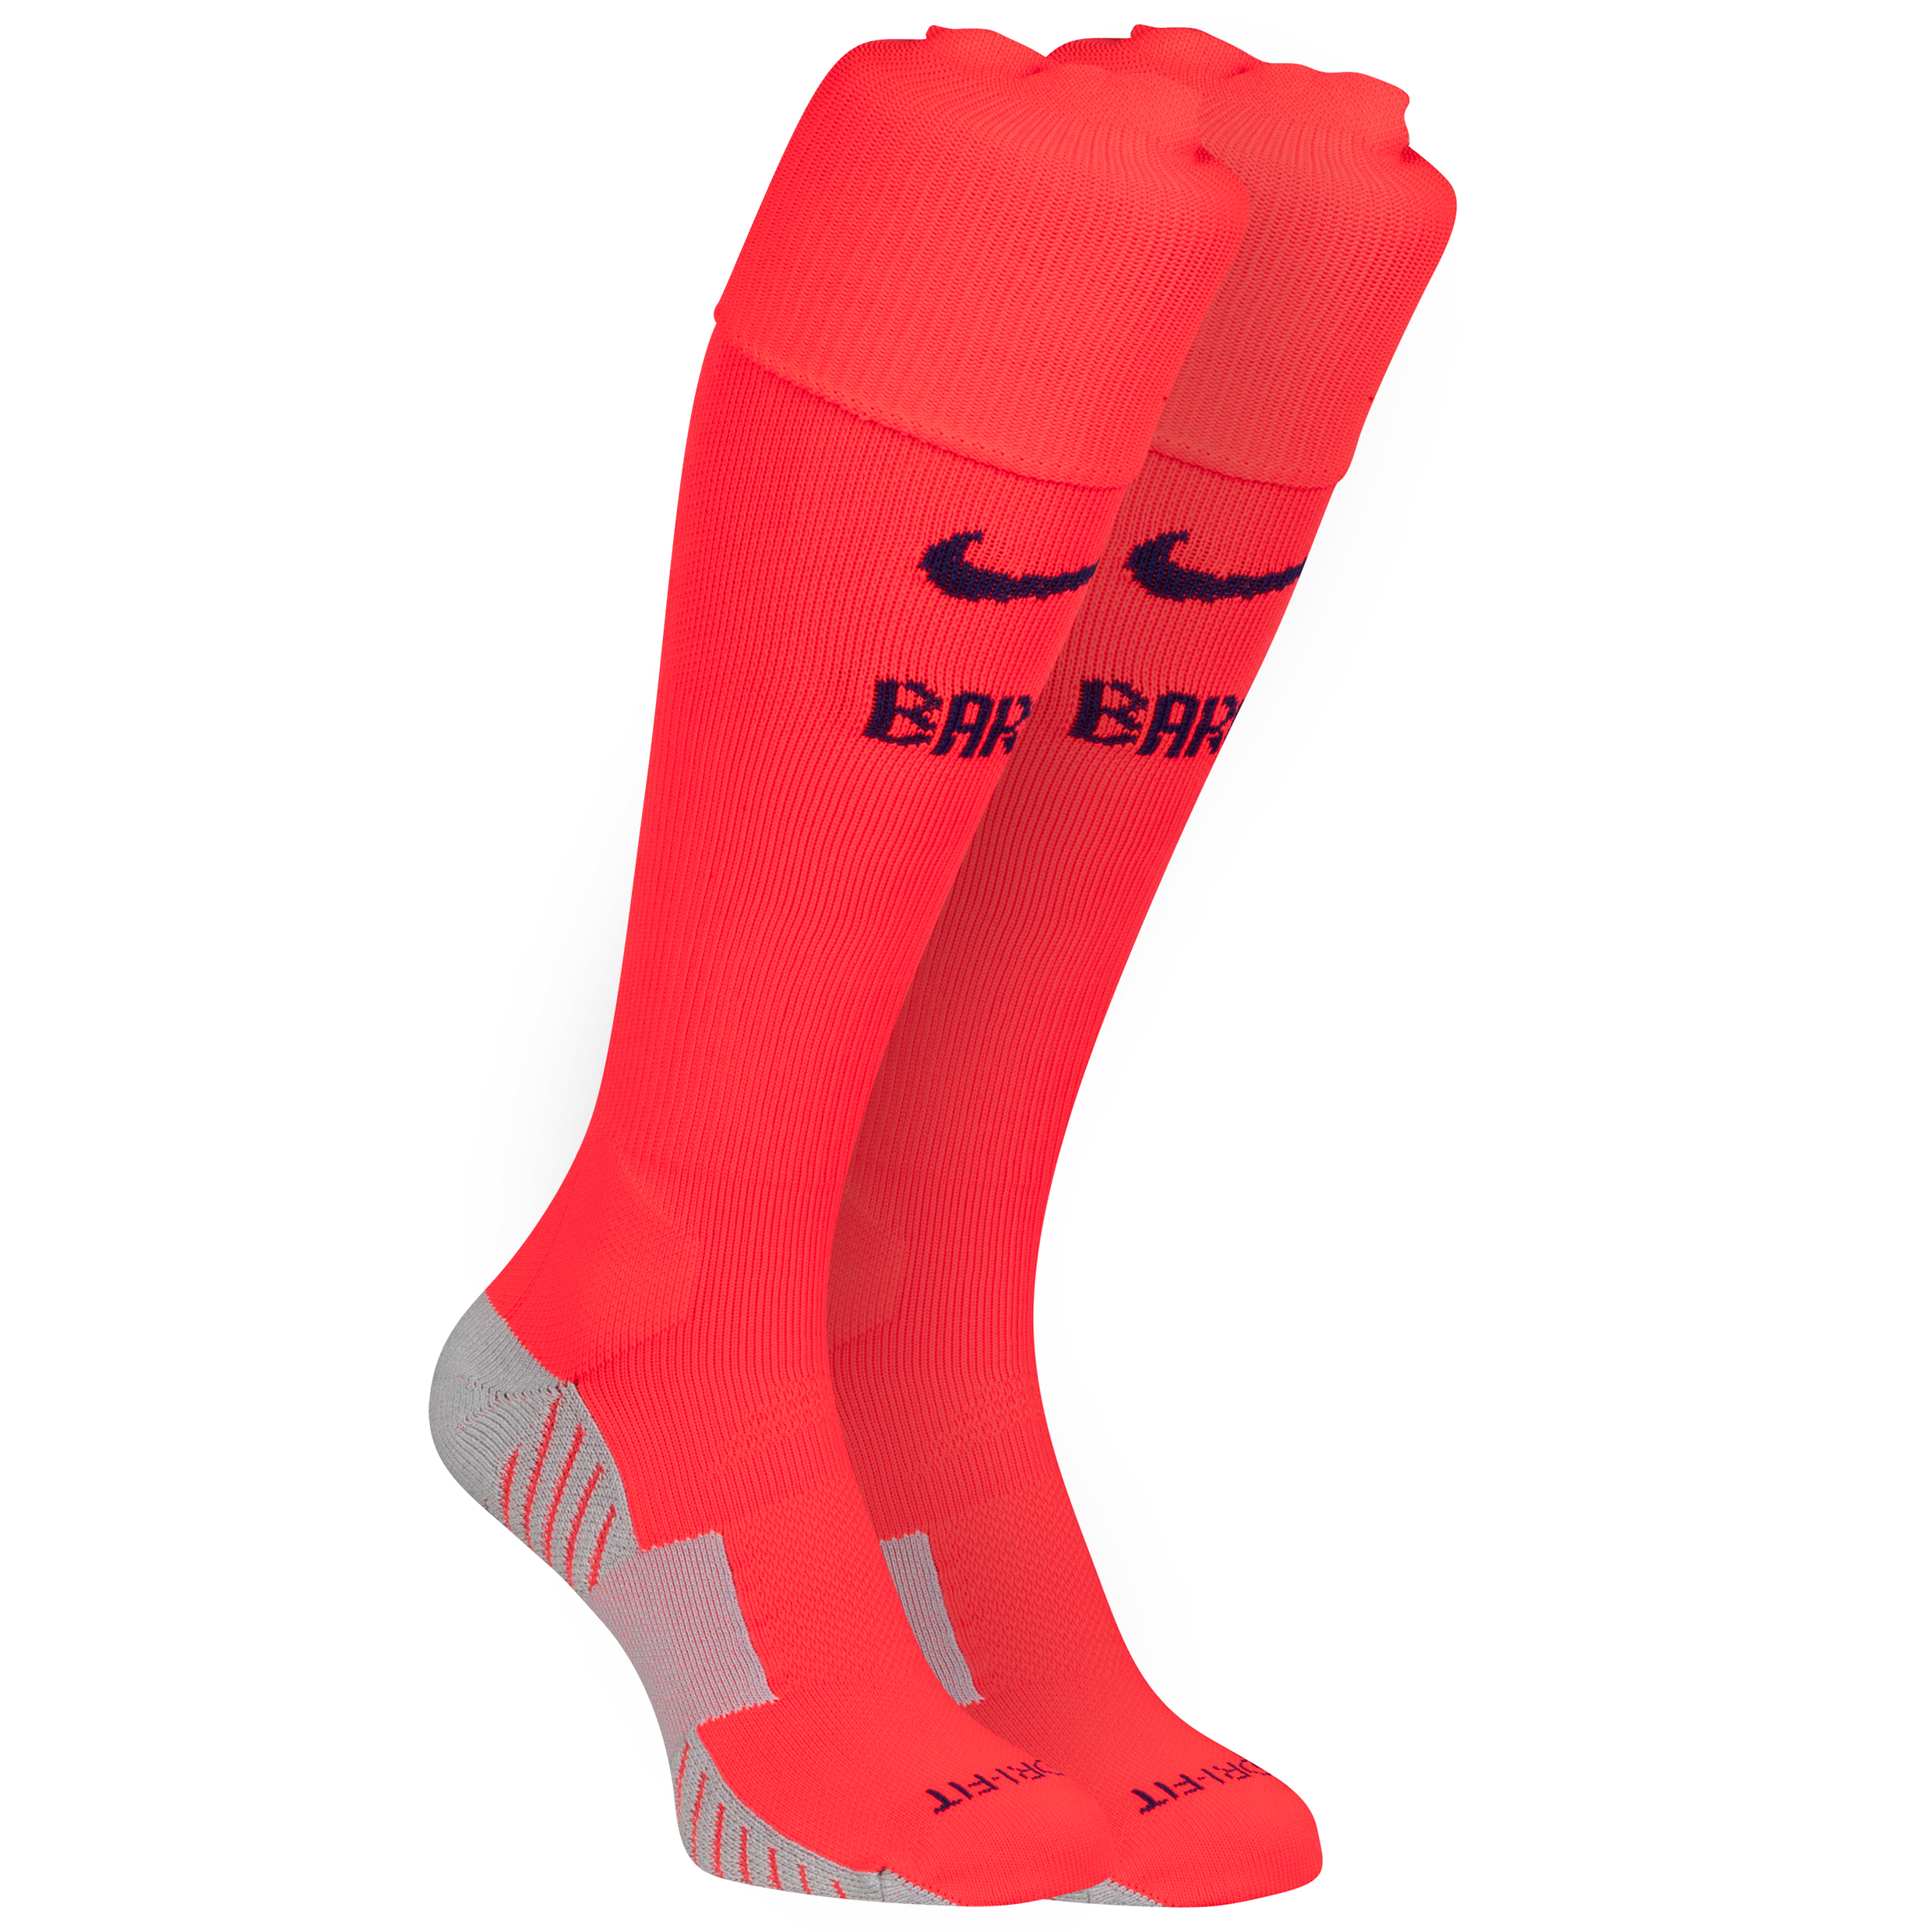 Barcelona Away Socks 2014/15 Red